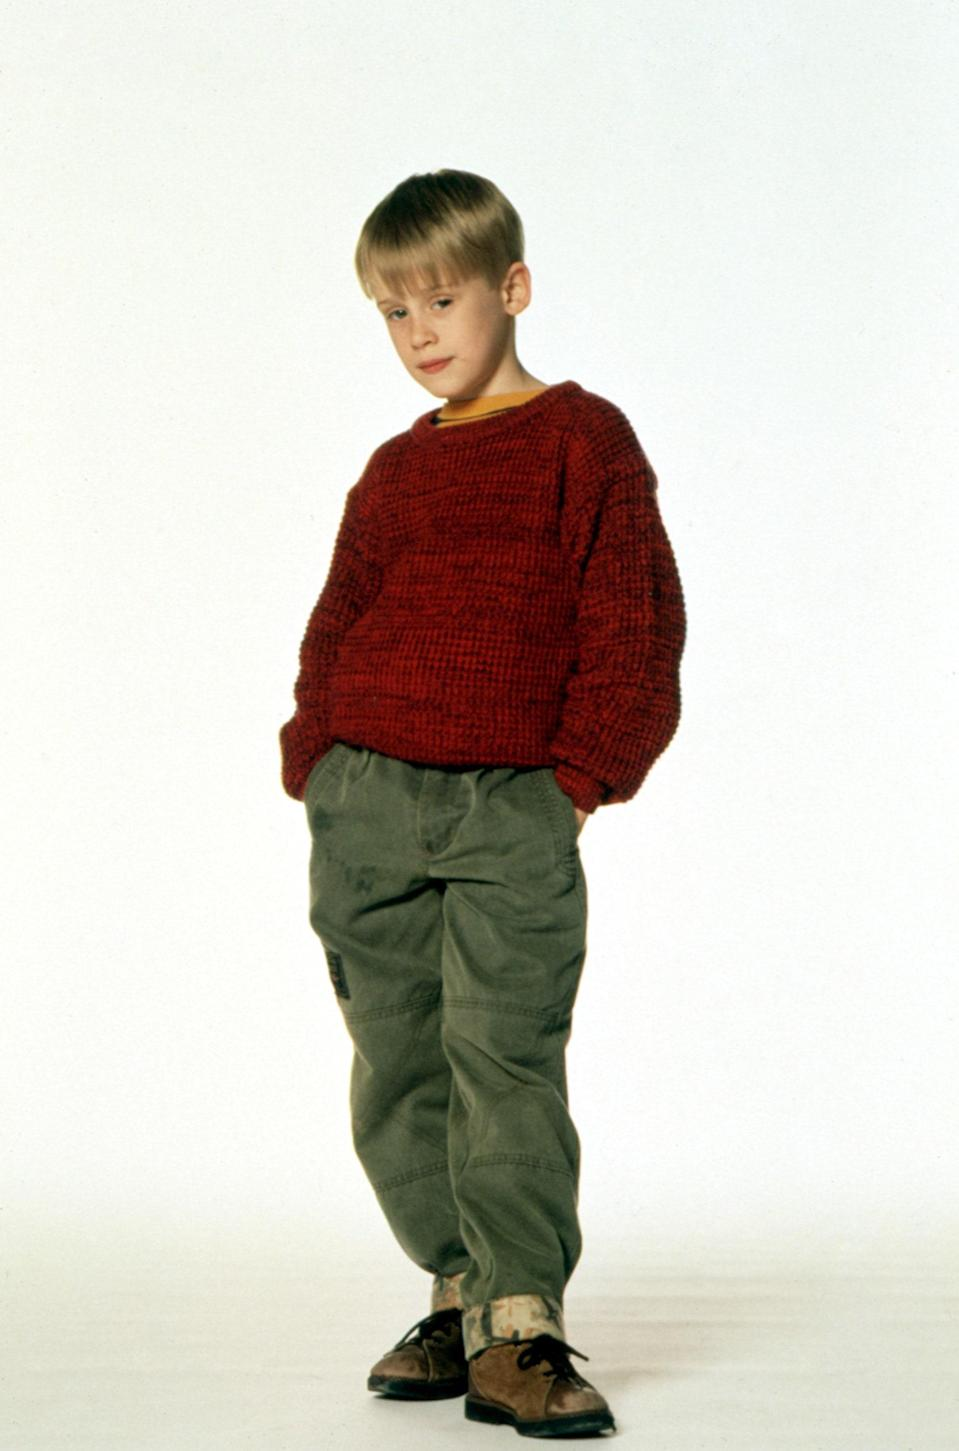 """<h1 class=""""title"""">HOME ALONE, Macaulay Culkin, 1990. TM & Copyright (c) 20th Century Fox Film Corp. All rights reserve</h1><cite class=""""credit"""">©20thCentFox/Courtesy Everett Collection</cite>"""